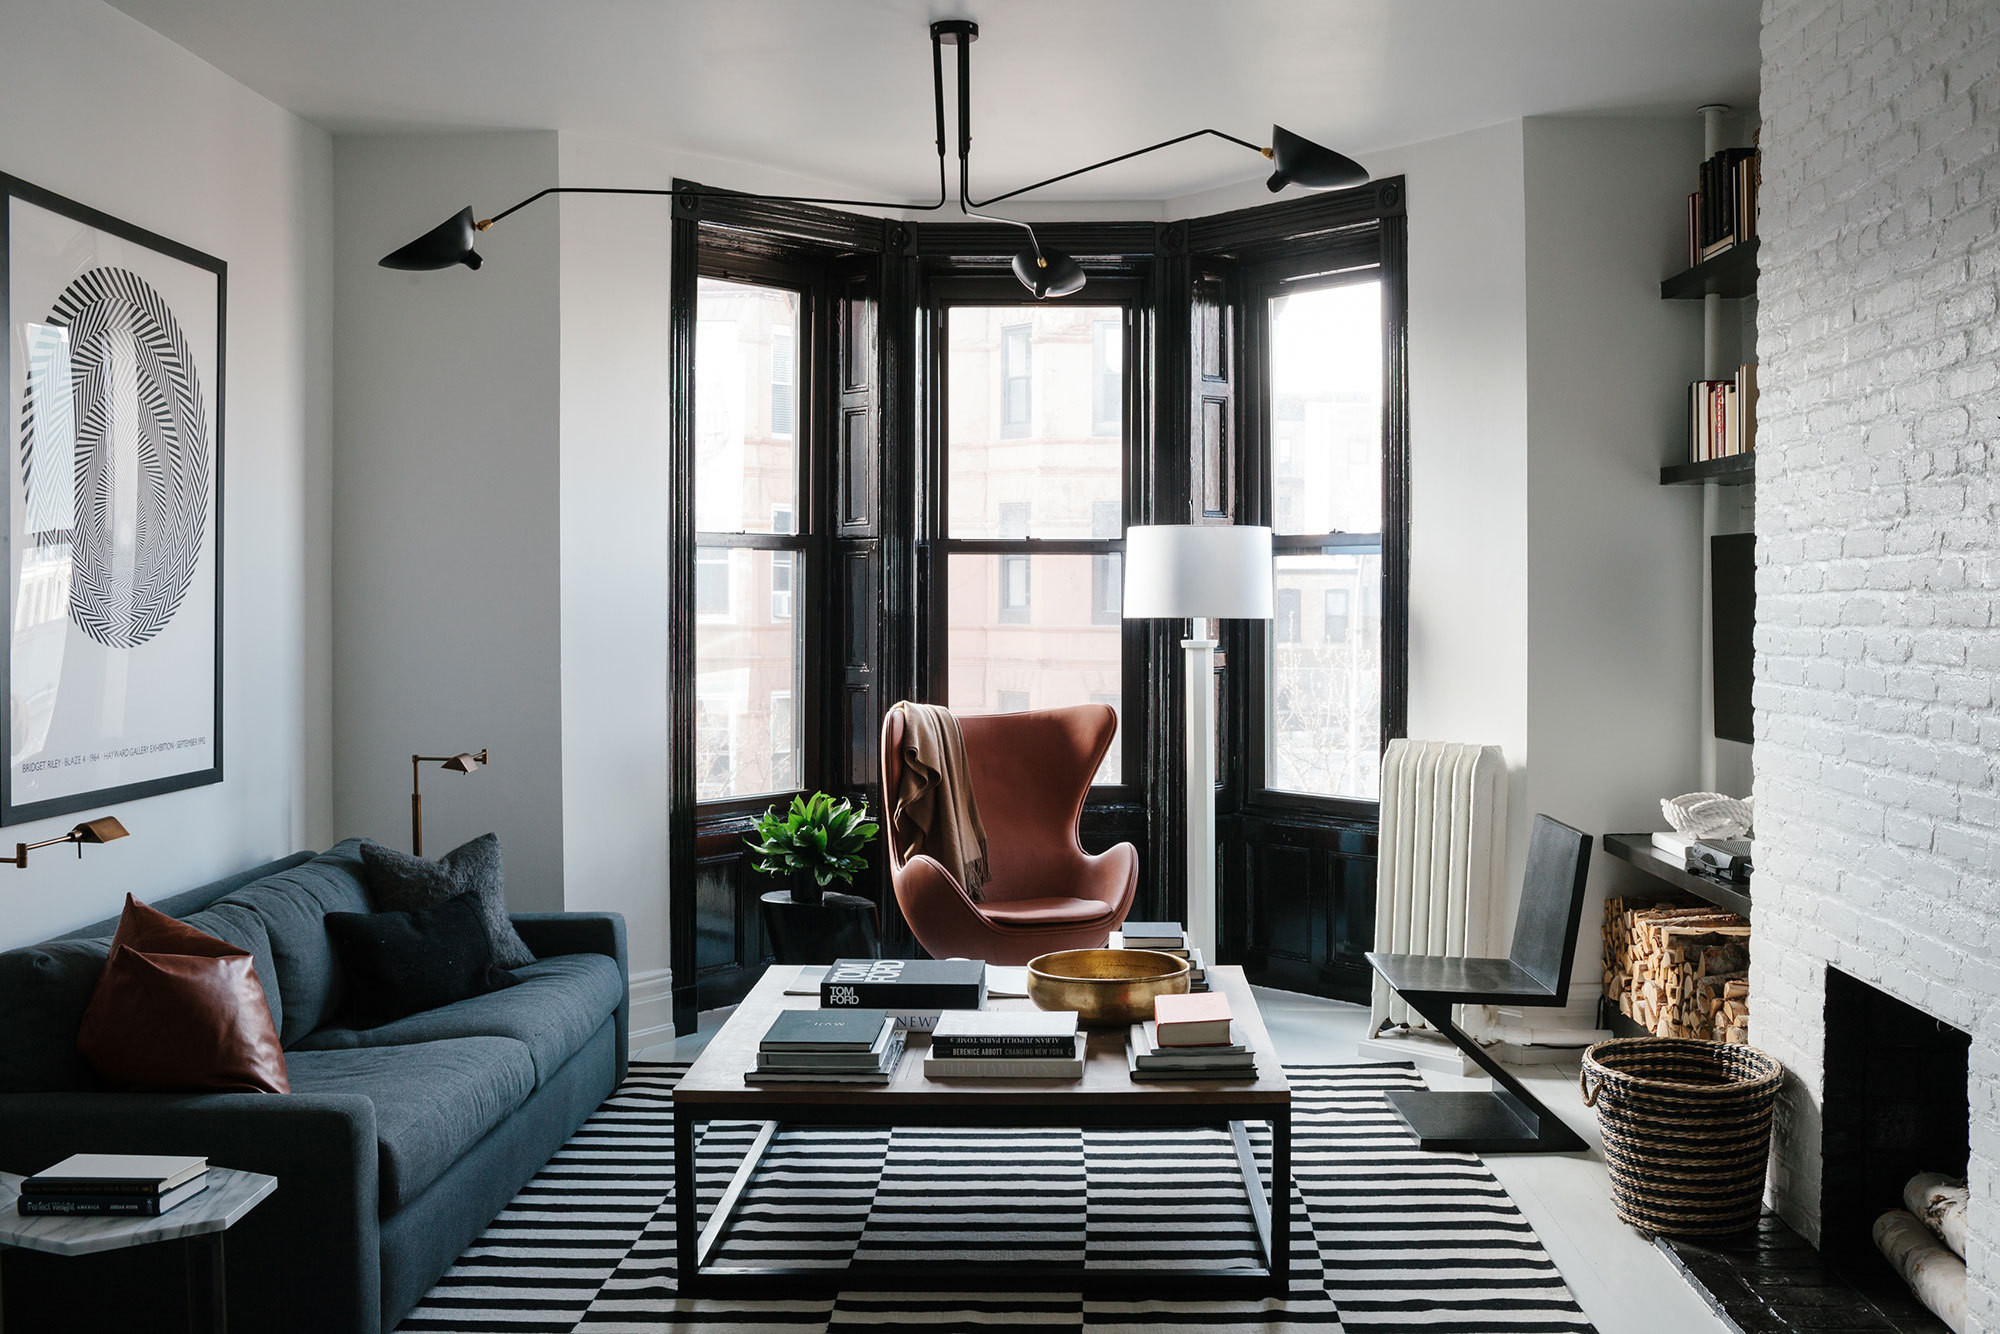 Design Bachelor Living Room a black and white bachelor pad in brooklyn home tour lonny for brownstone apartment designer dan mazzarini melded historic architecture modern masculine